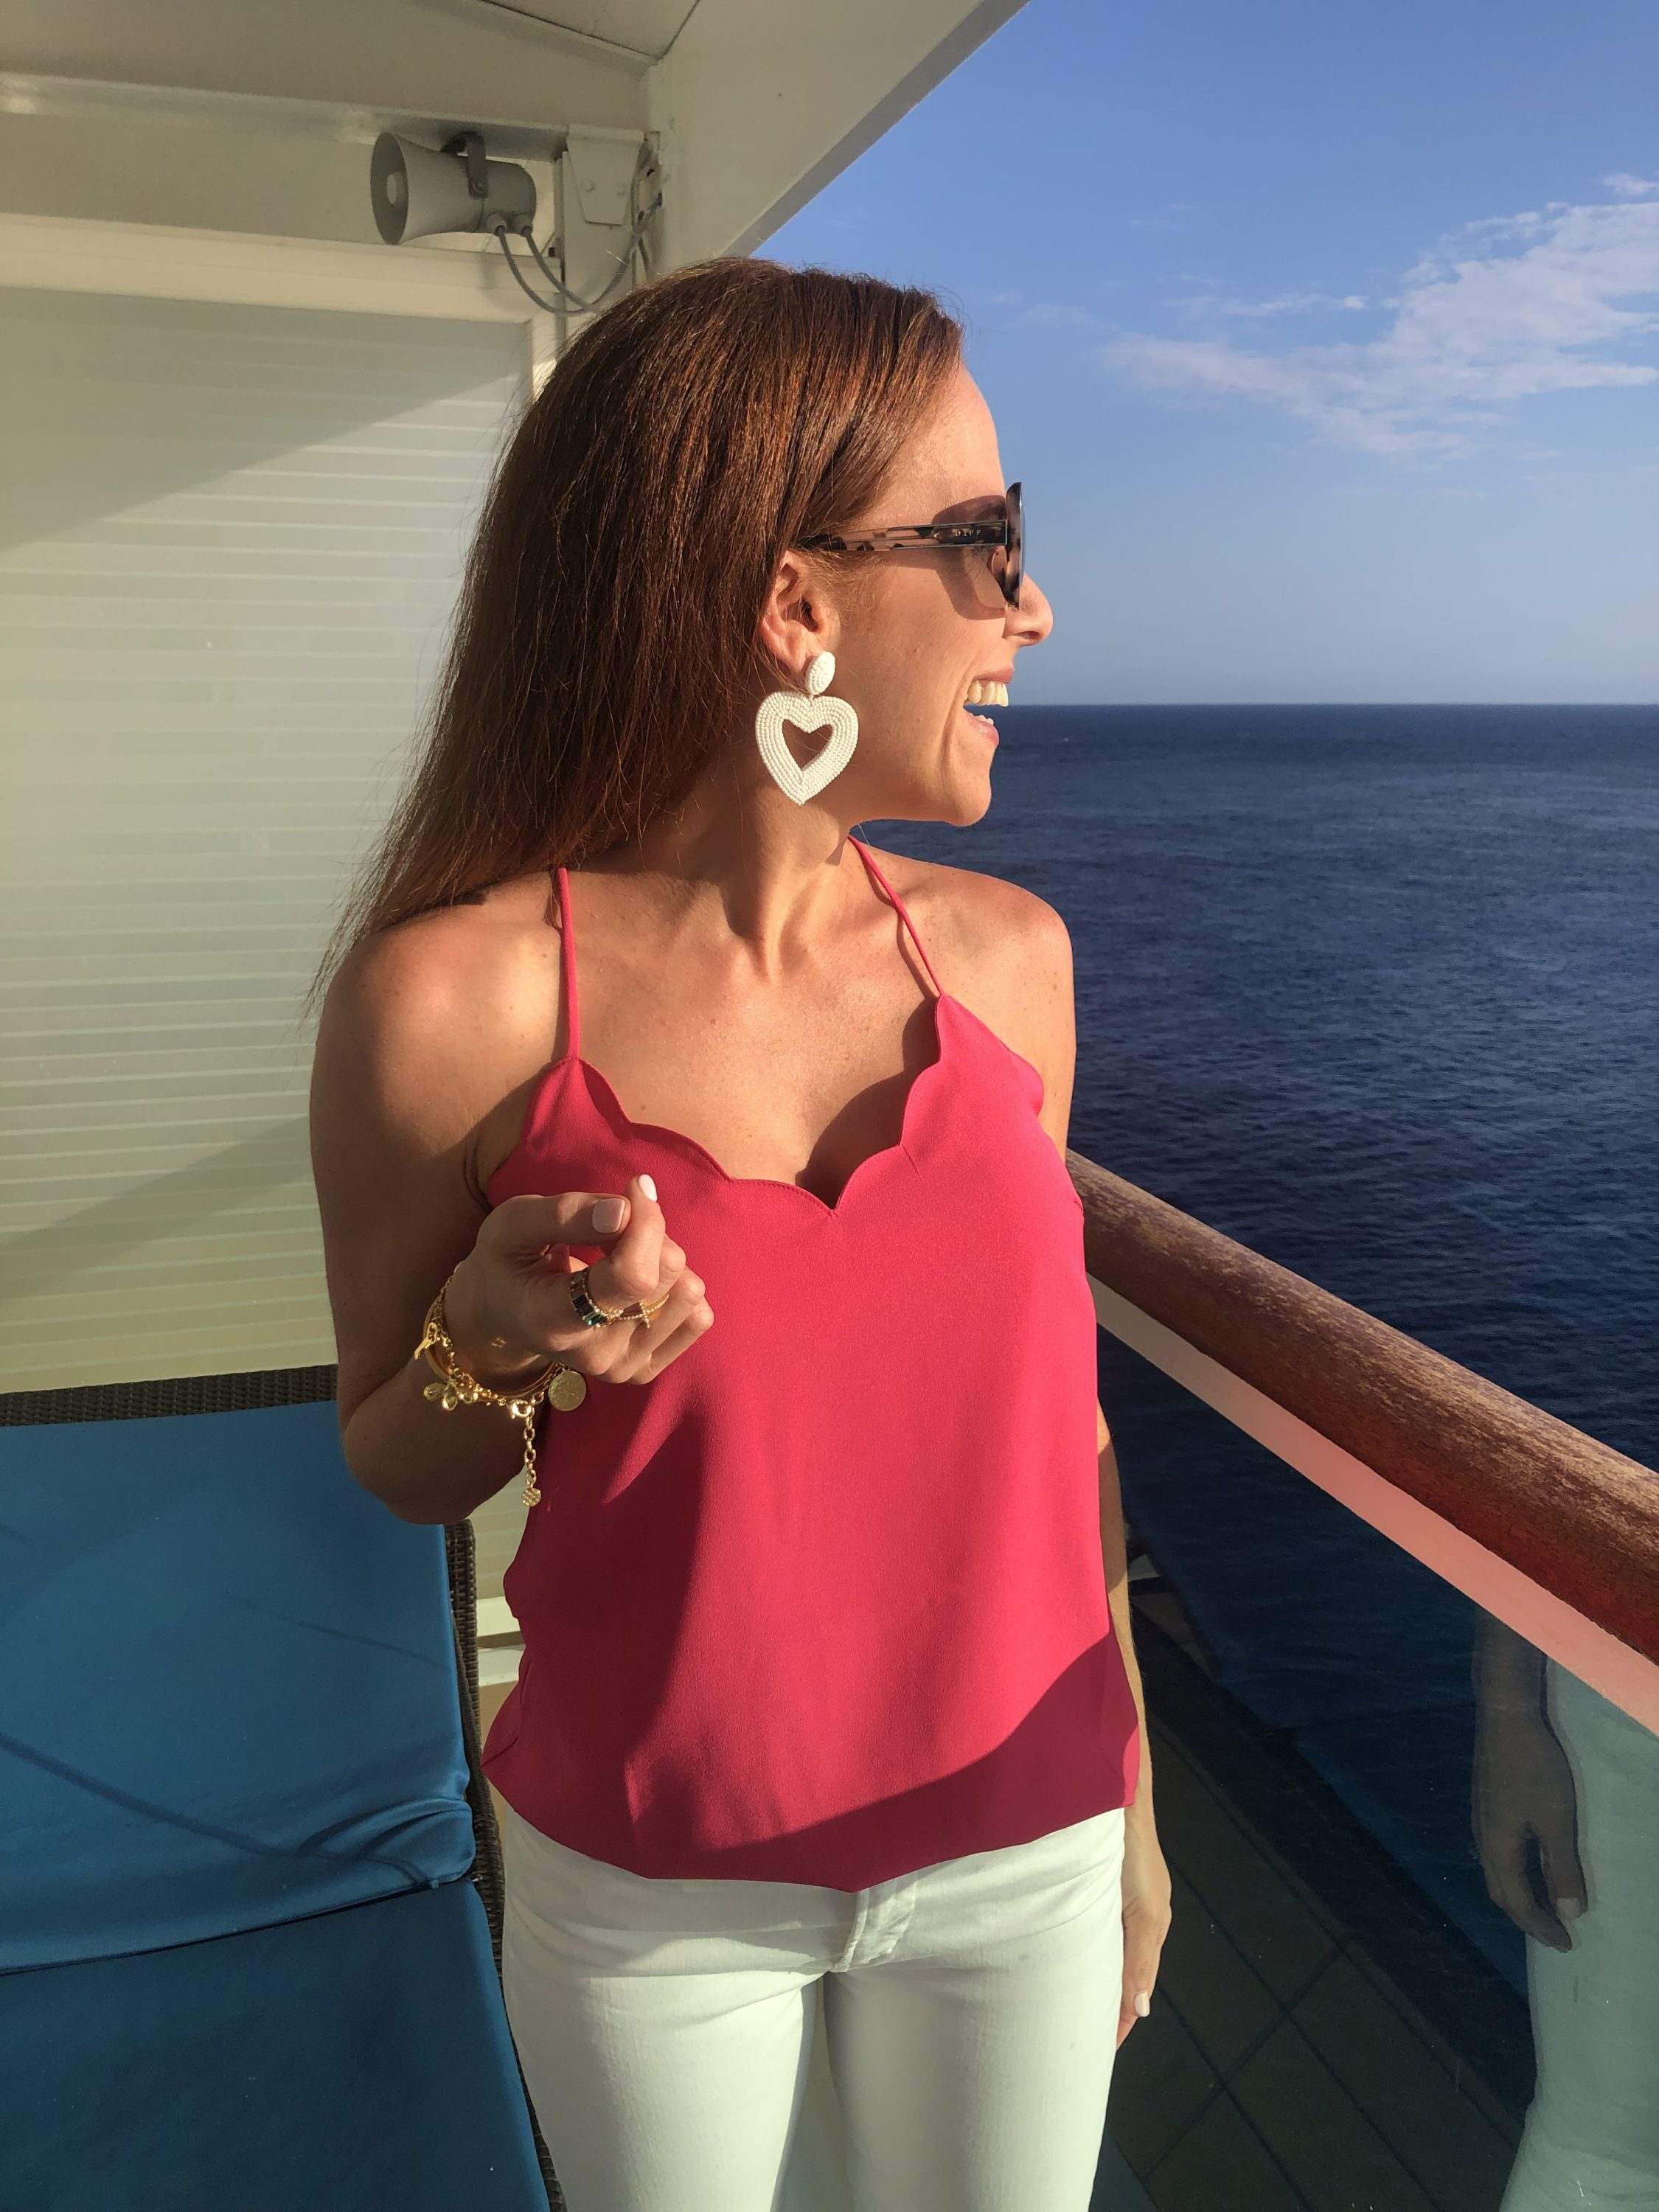 Scalloped tank and heart earrings // what to wear on a cruise